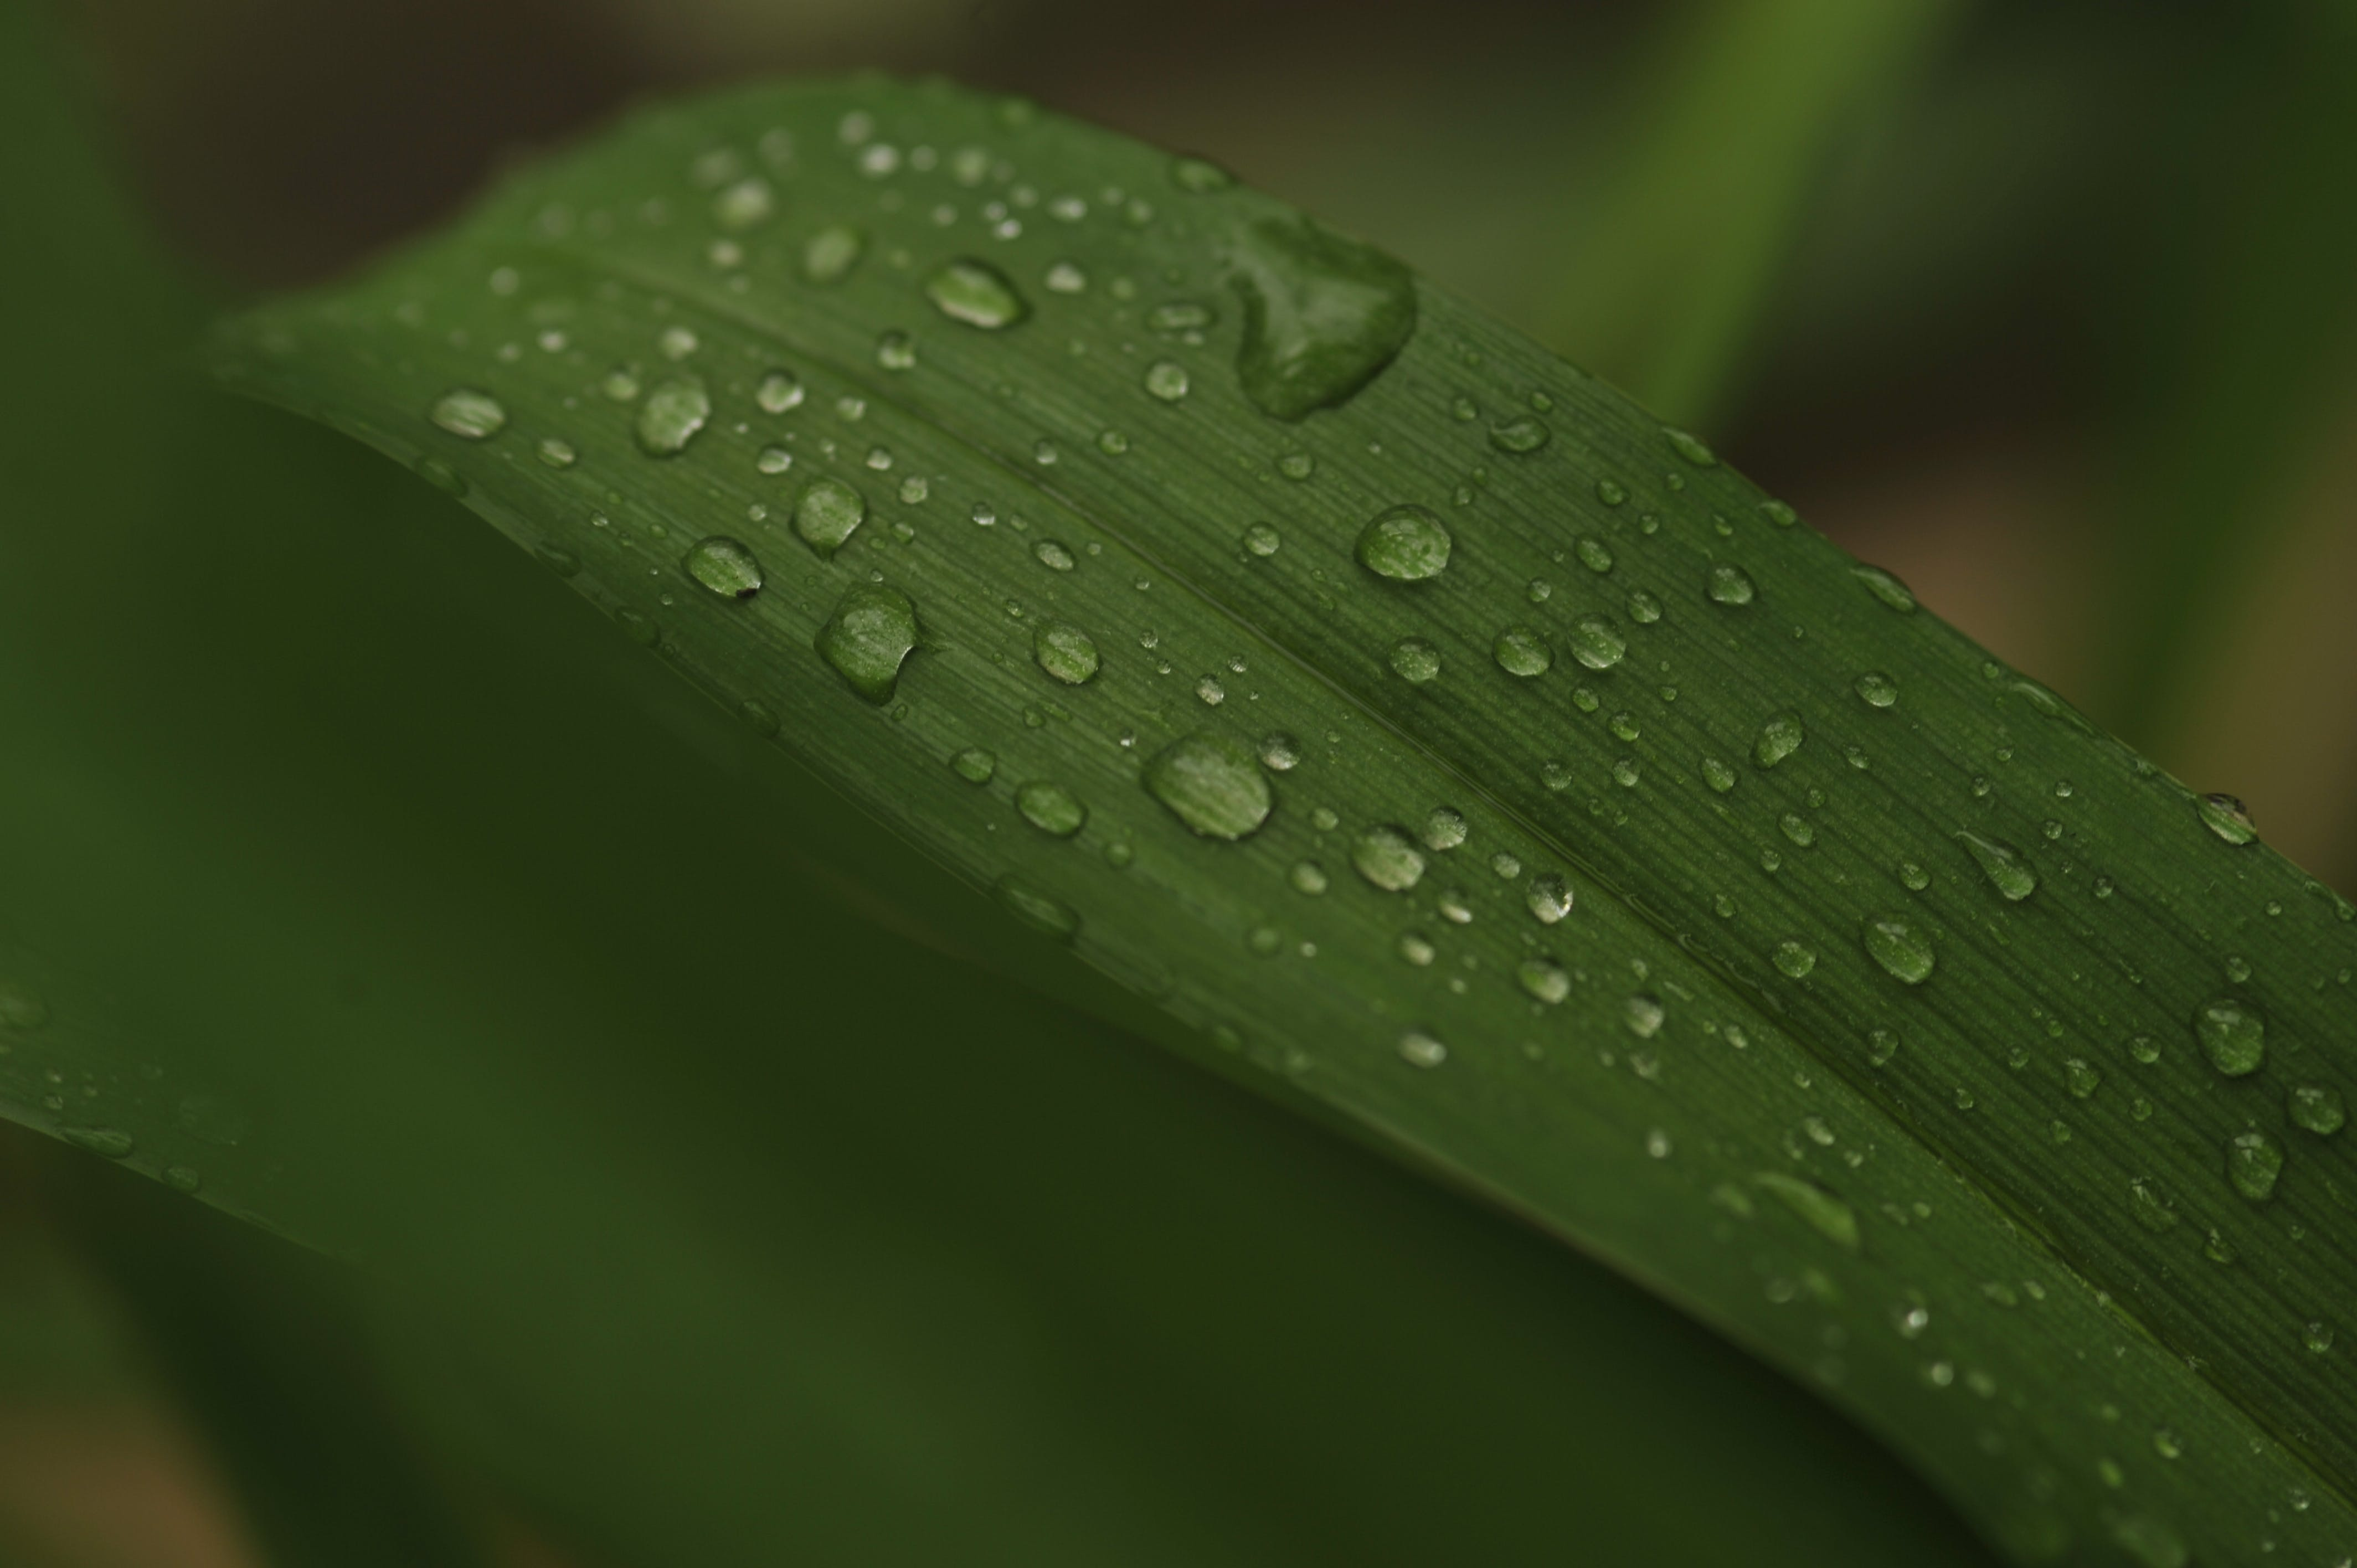 Water Dew Photo of Green Leaf Plant